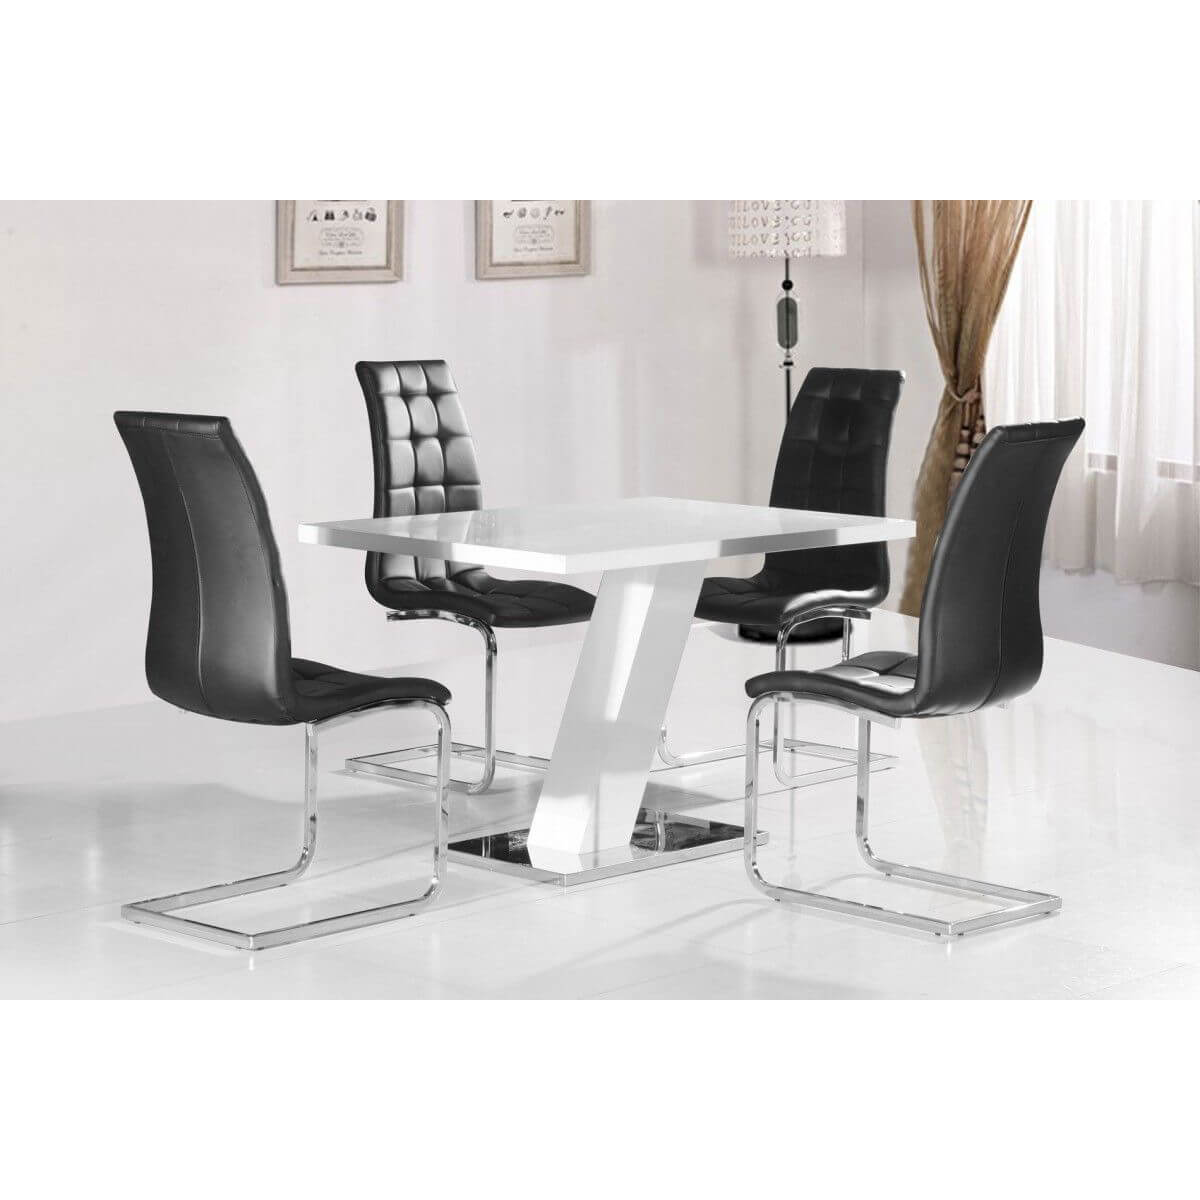 Arizona White High Gloss Dining Set Black